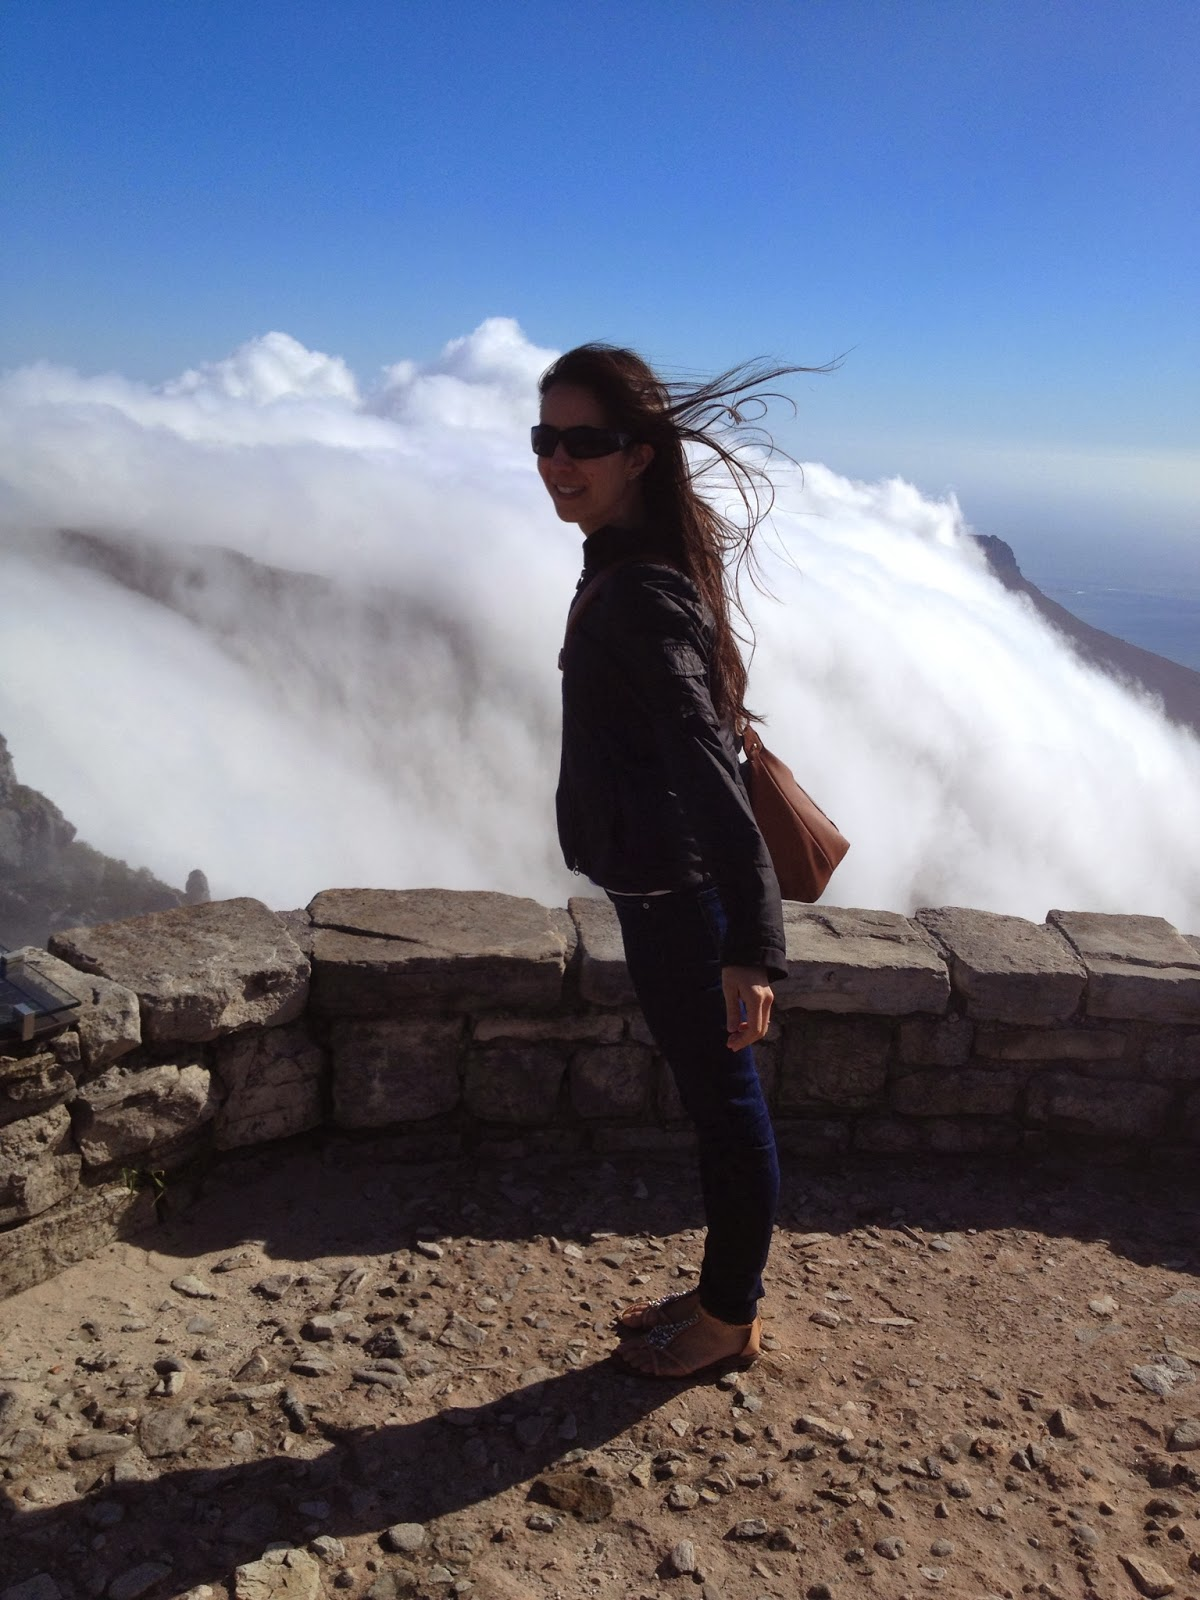 Cape Town - Very strong winds on Table Mountain